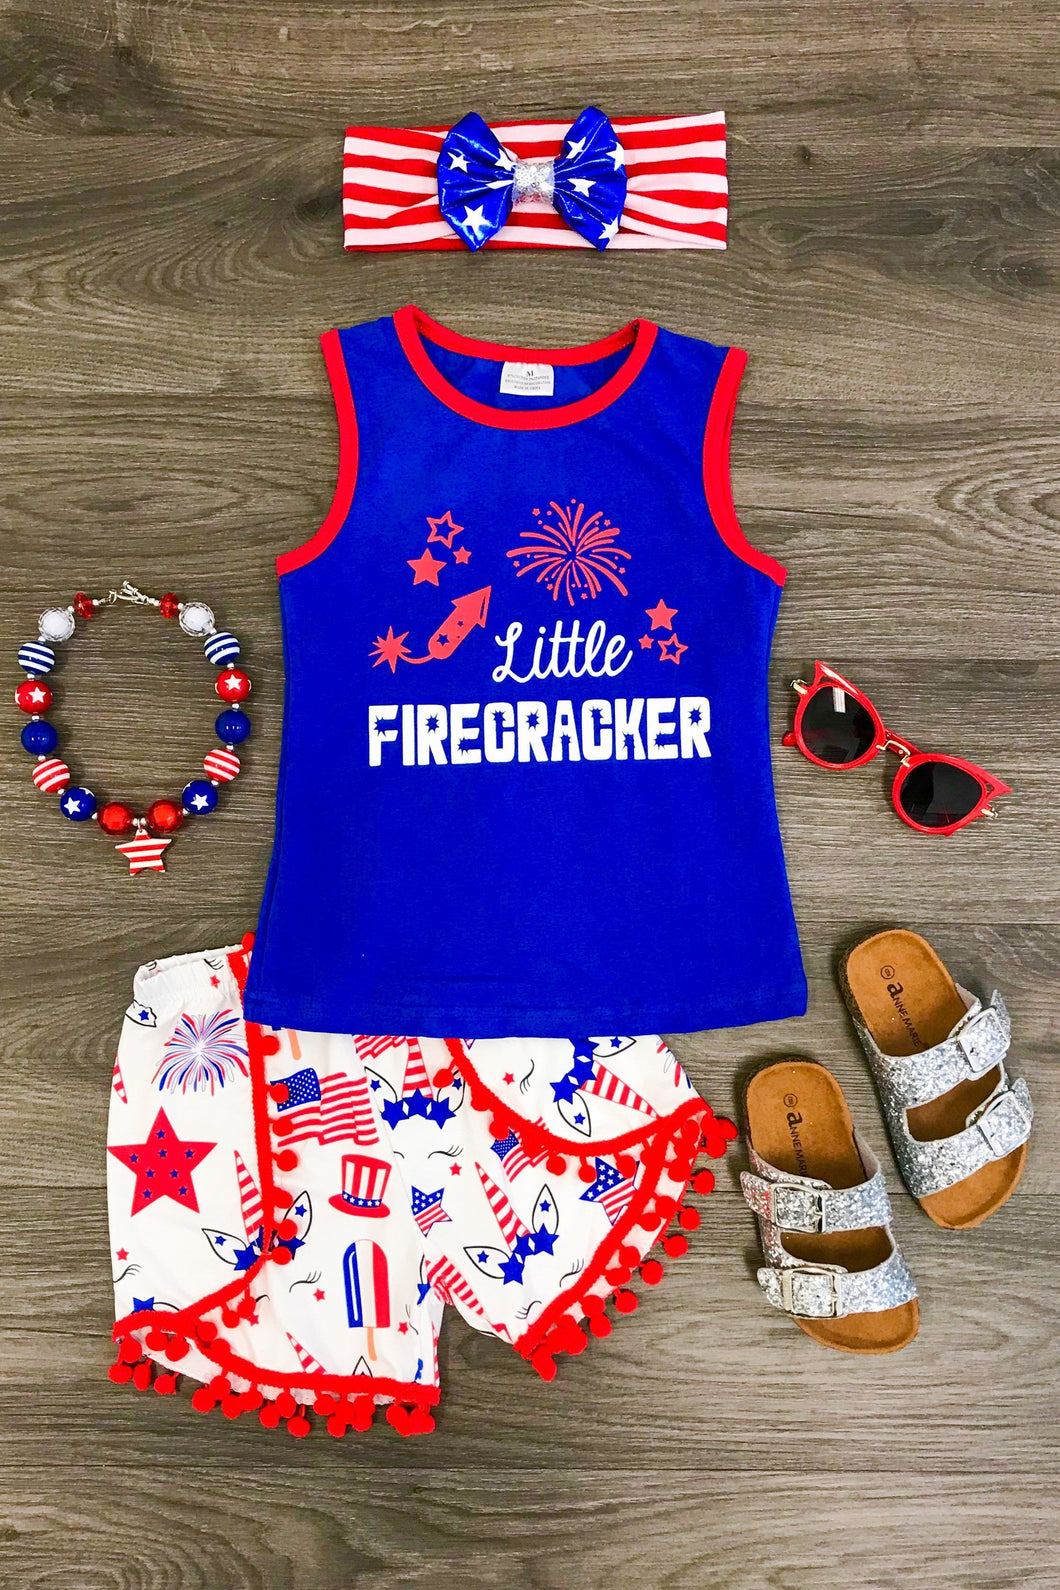 Little Firecracker Outfit